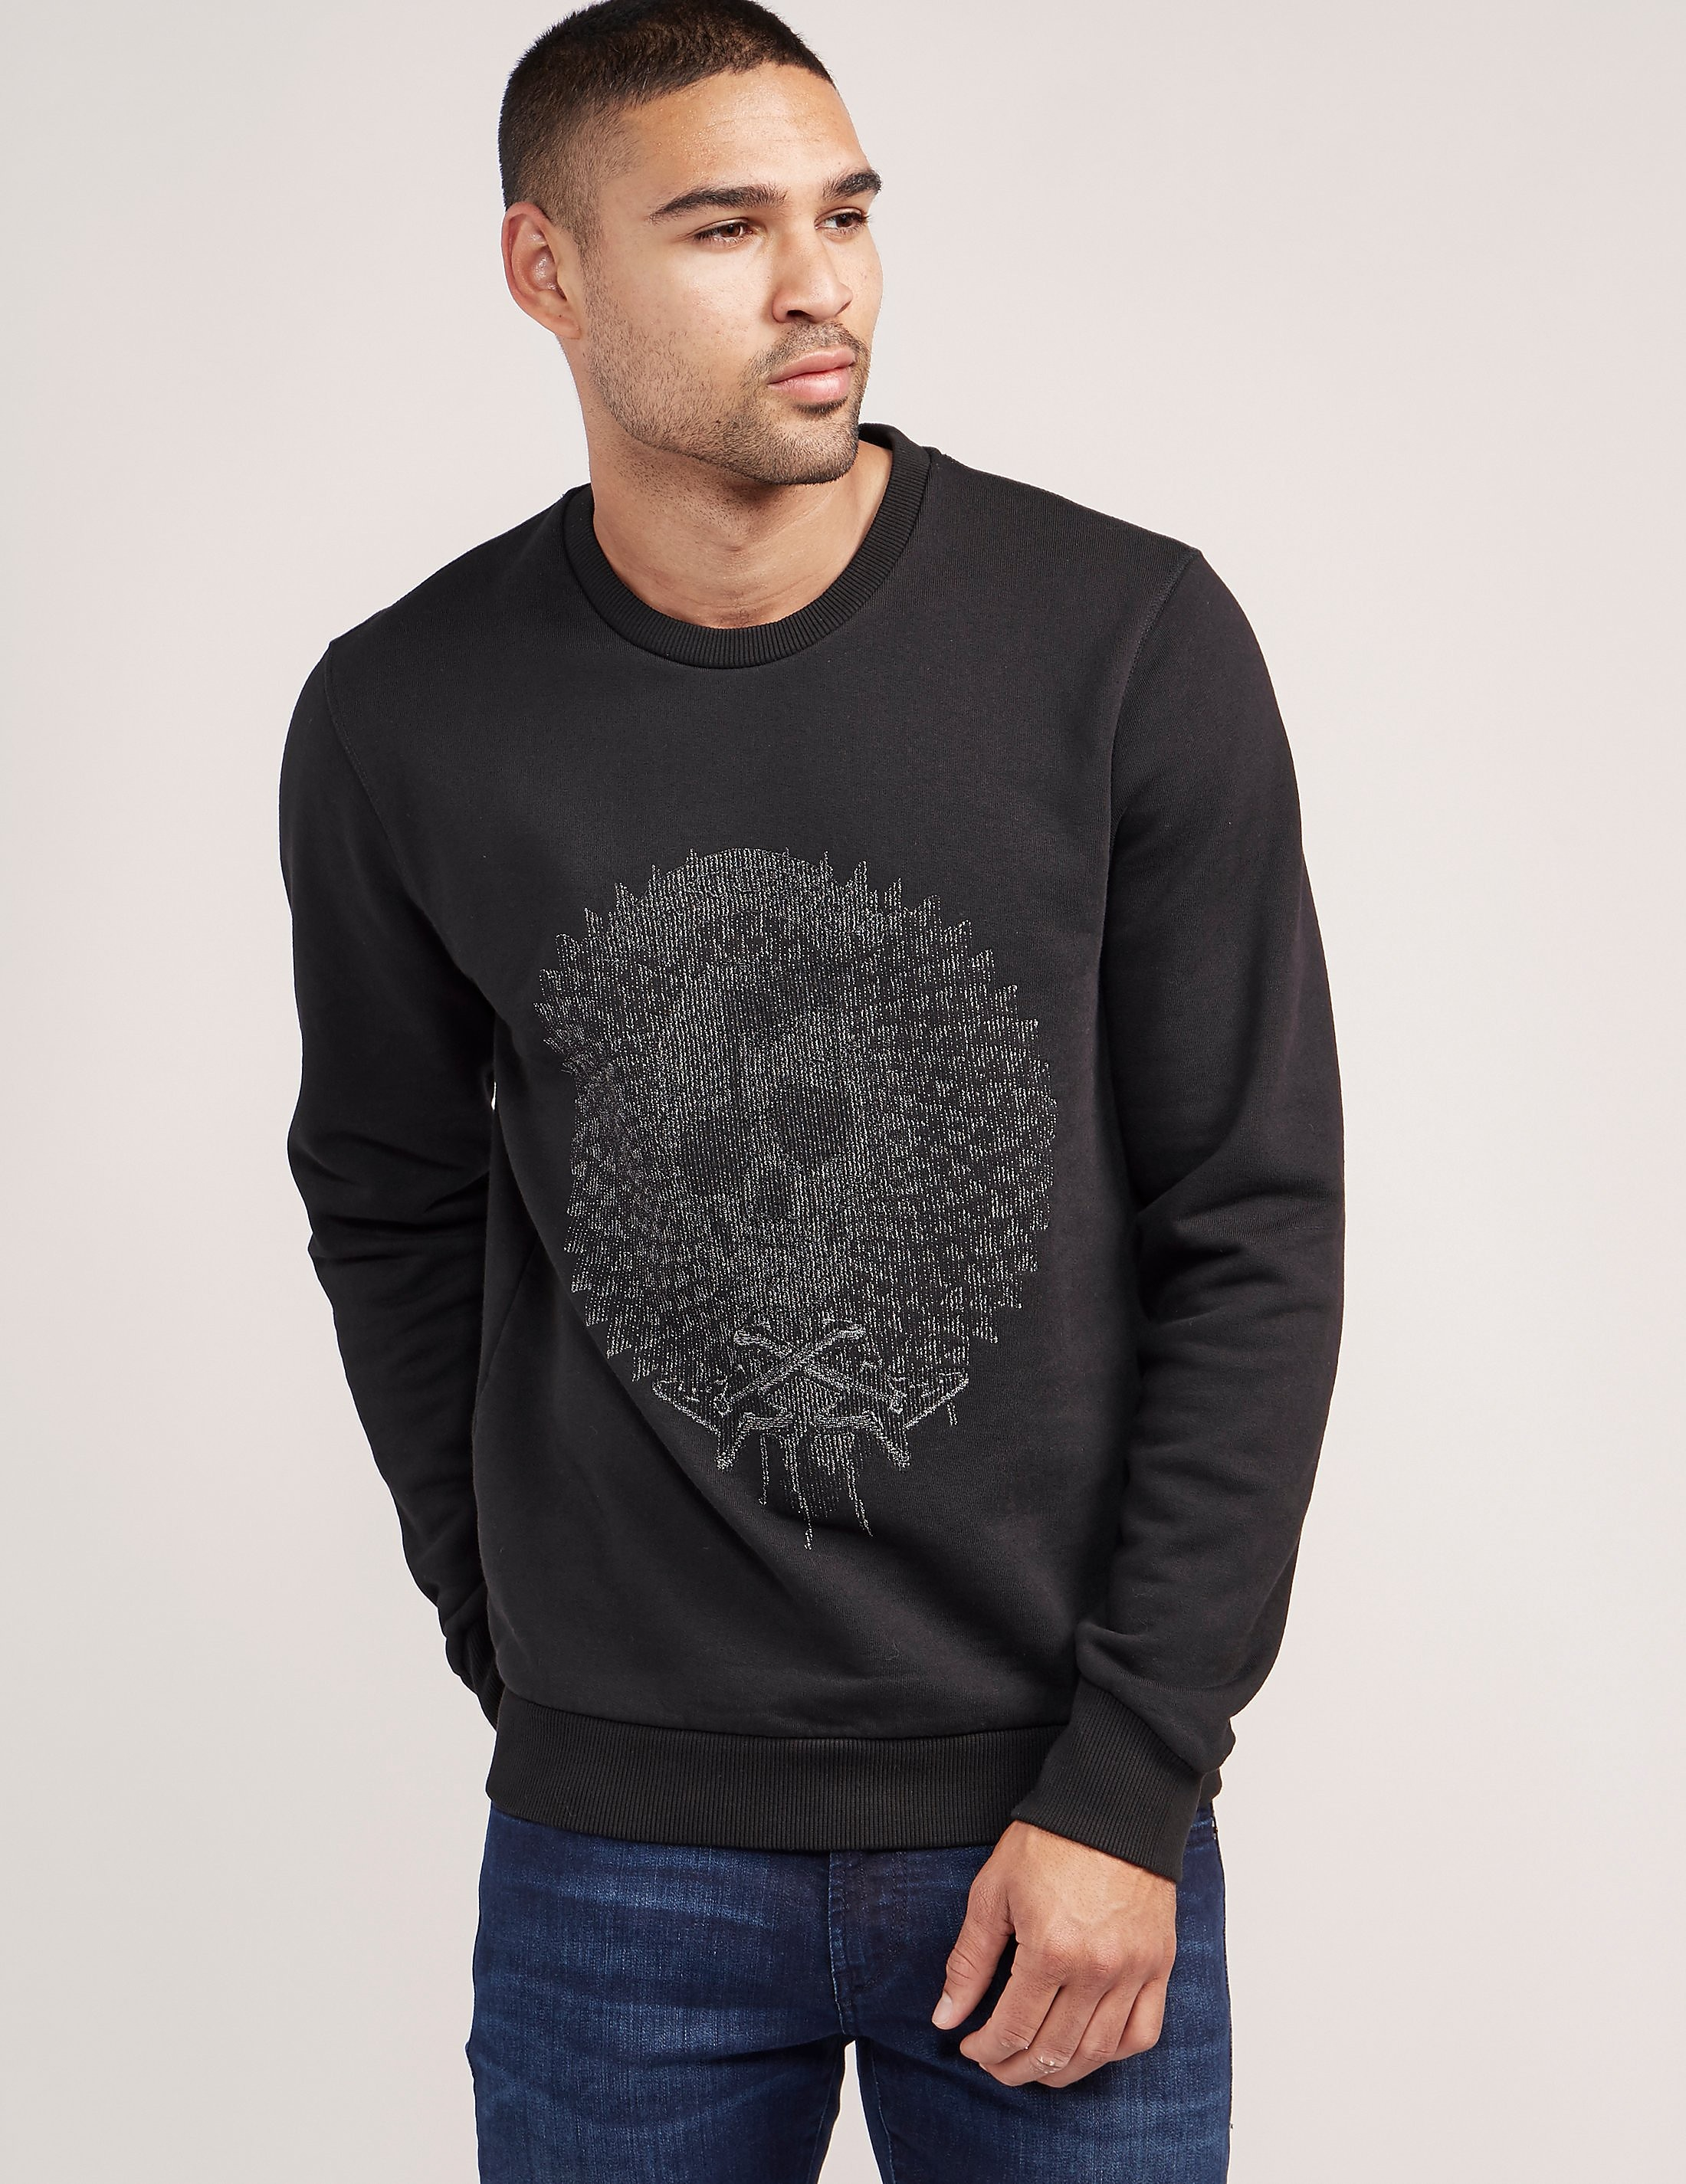 Just Cavalli Jewel Skull Sweatshirt